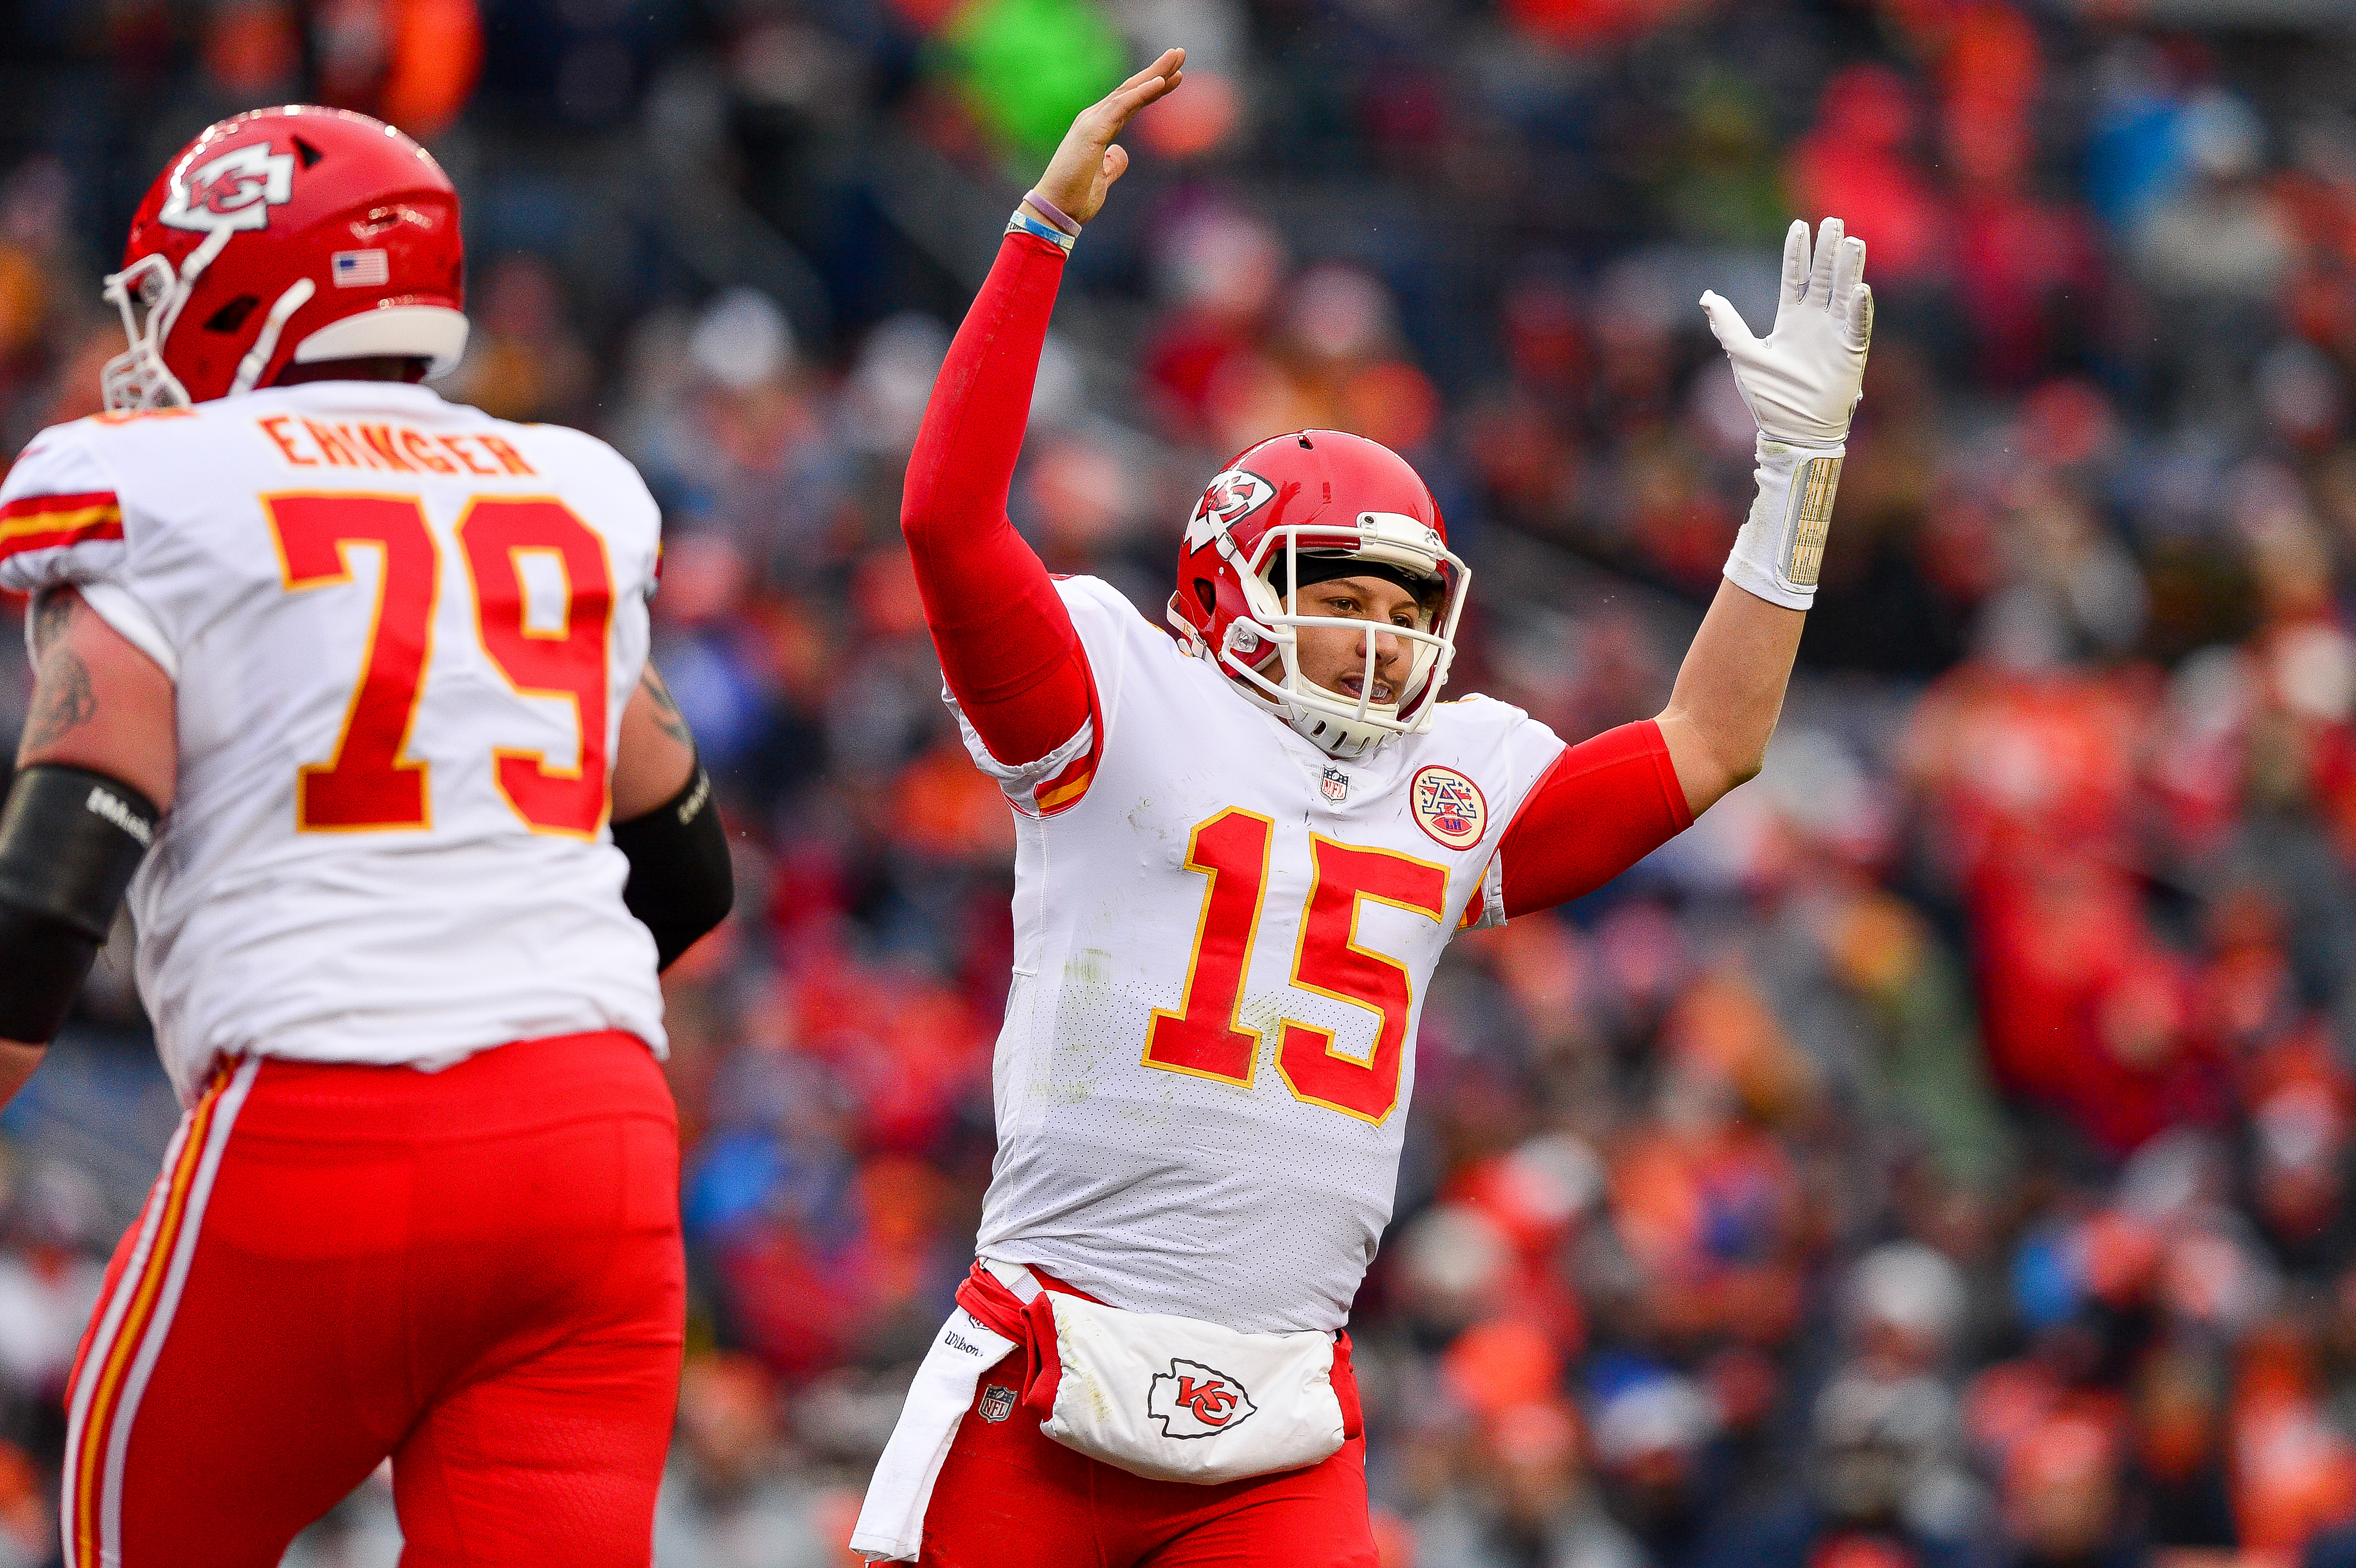 The one thing Patrick Mahomes has that Alex Smith didn't